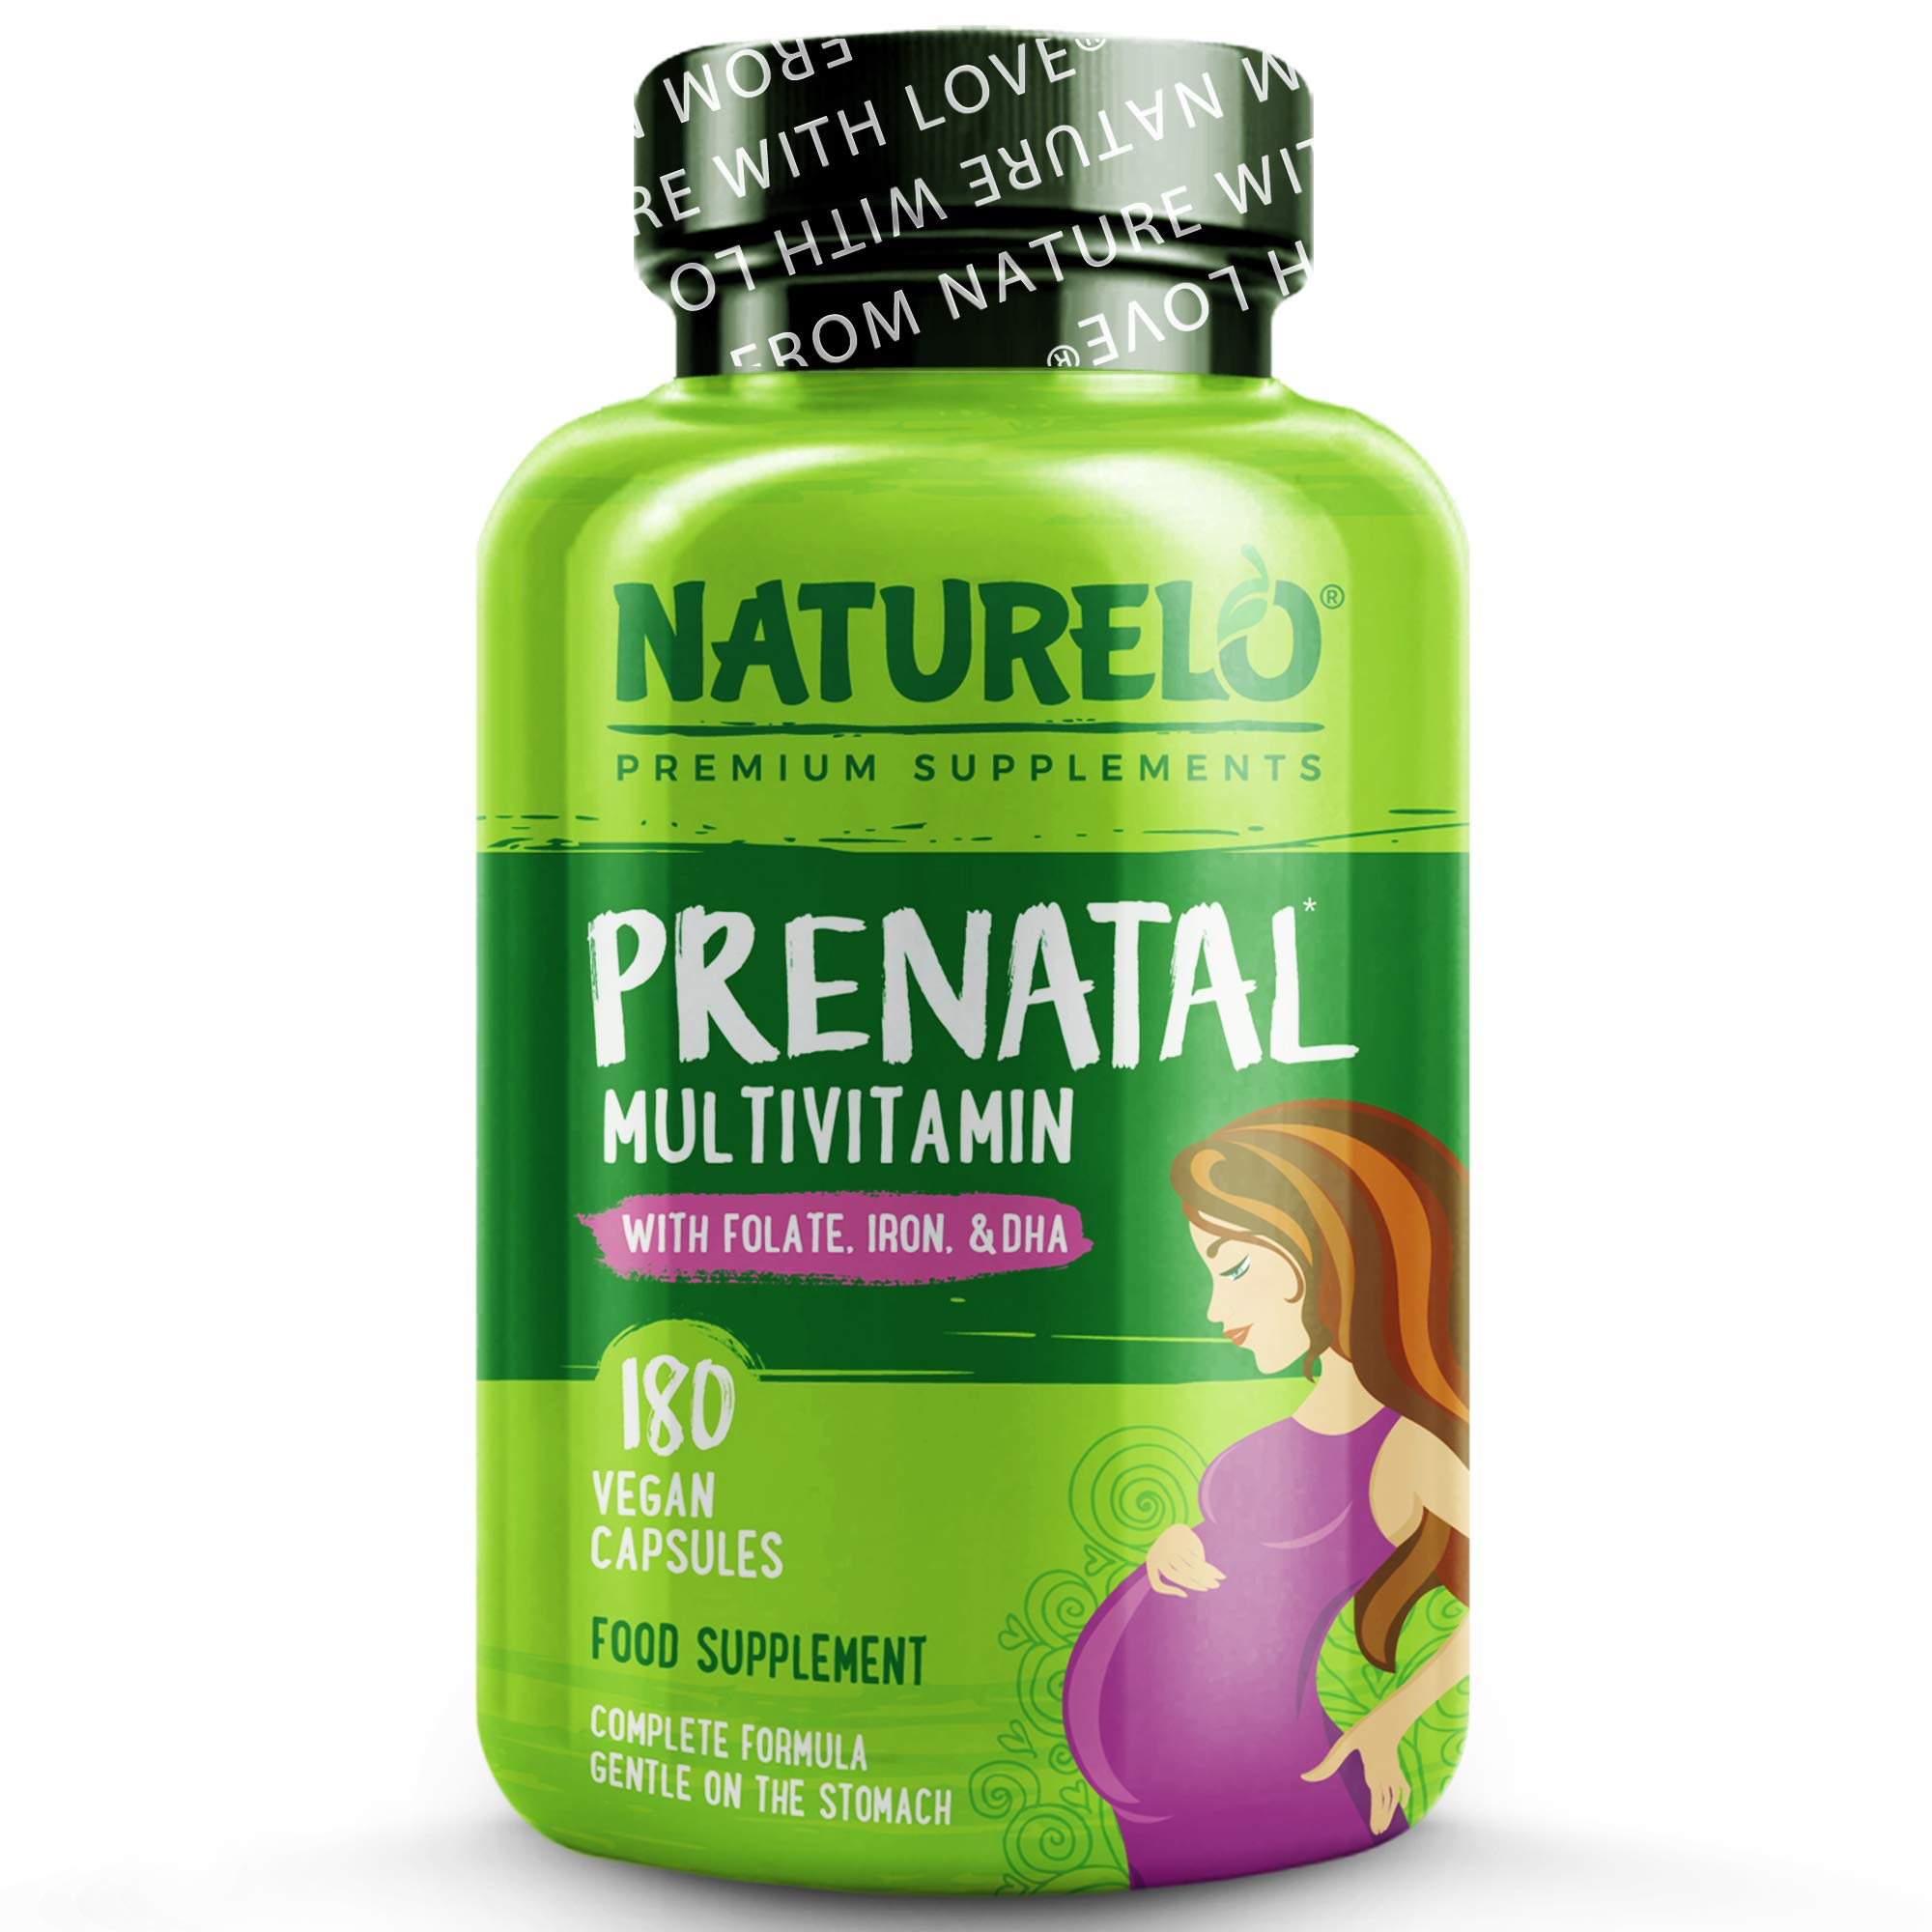 NATURELO Prenatal Whole Food Multivitamin - with Natural Vitamin D, Folate, Iron & Herbs - 180 Caps | 2 Month Supply